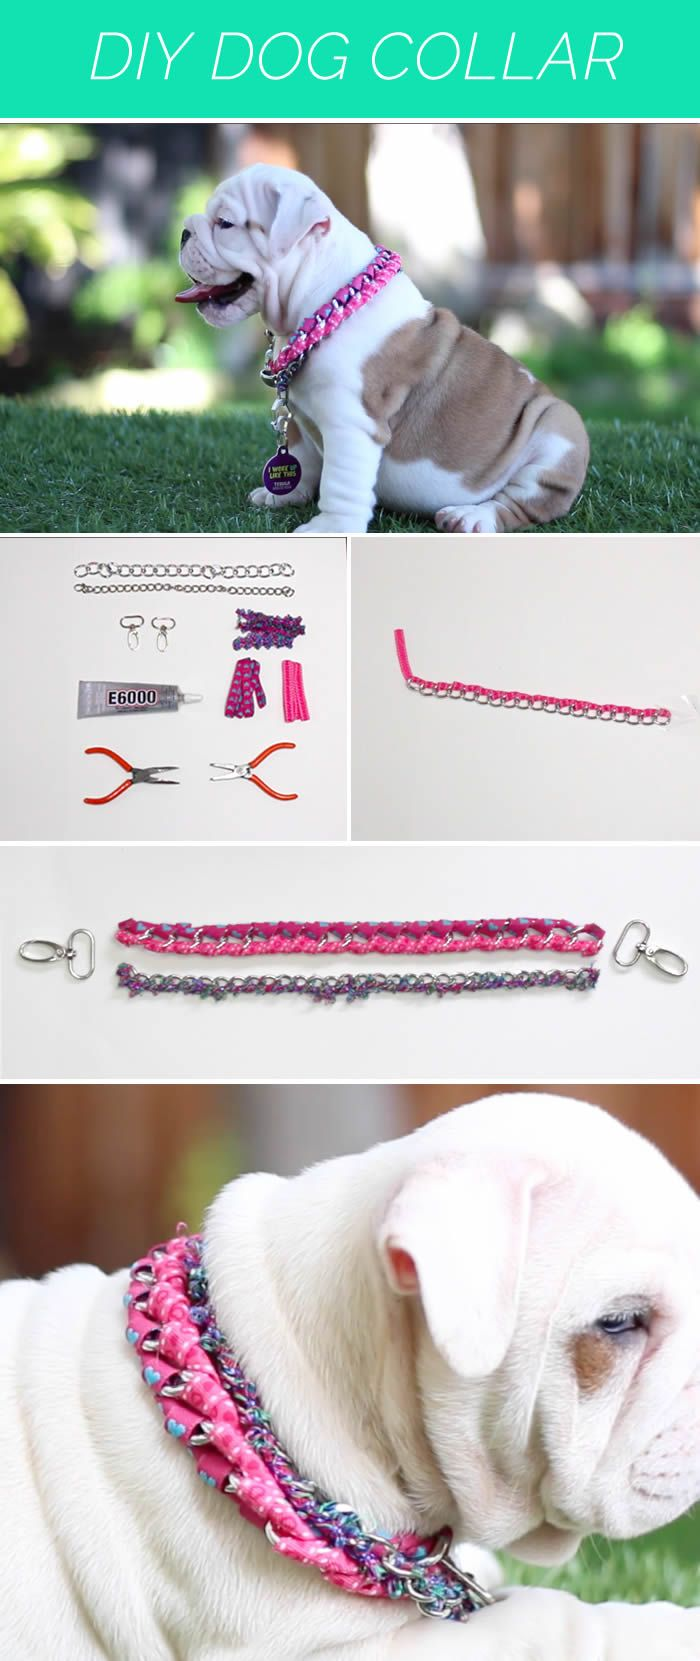 [VIDEO] We're teaching you how to make this awesome dog collar to make your dog look great. #upet